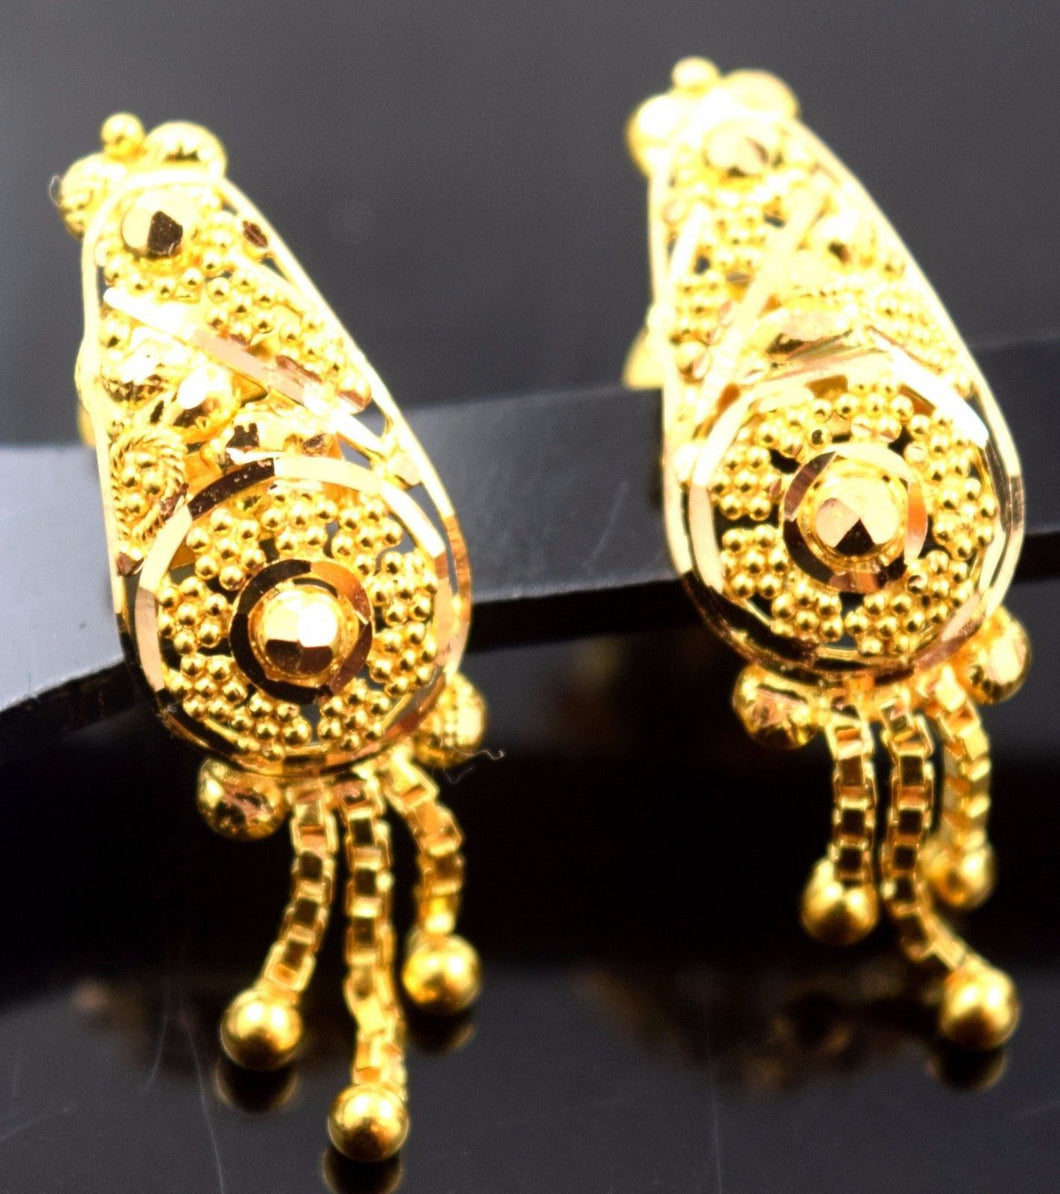 22k 22ct Solid Gold ELEGANT LONG Earrings STUD with box E1127 - Royal Dubai Jewellers